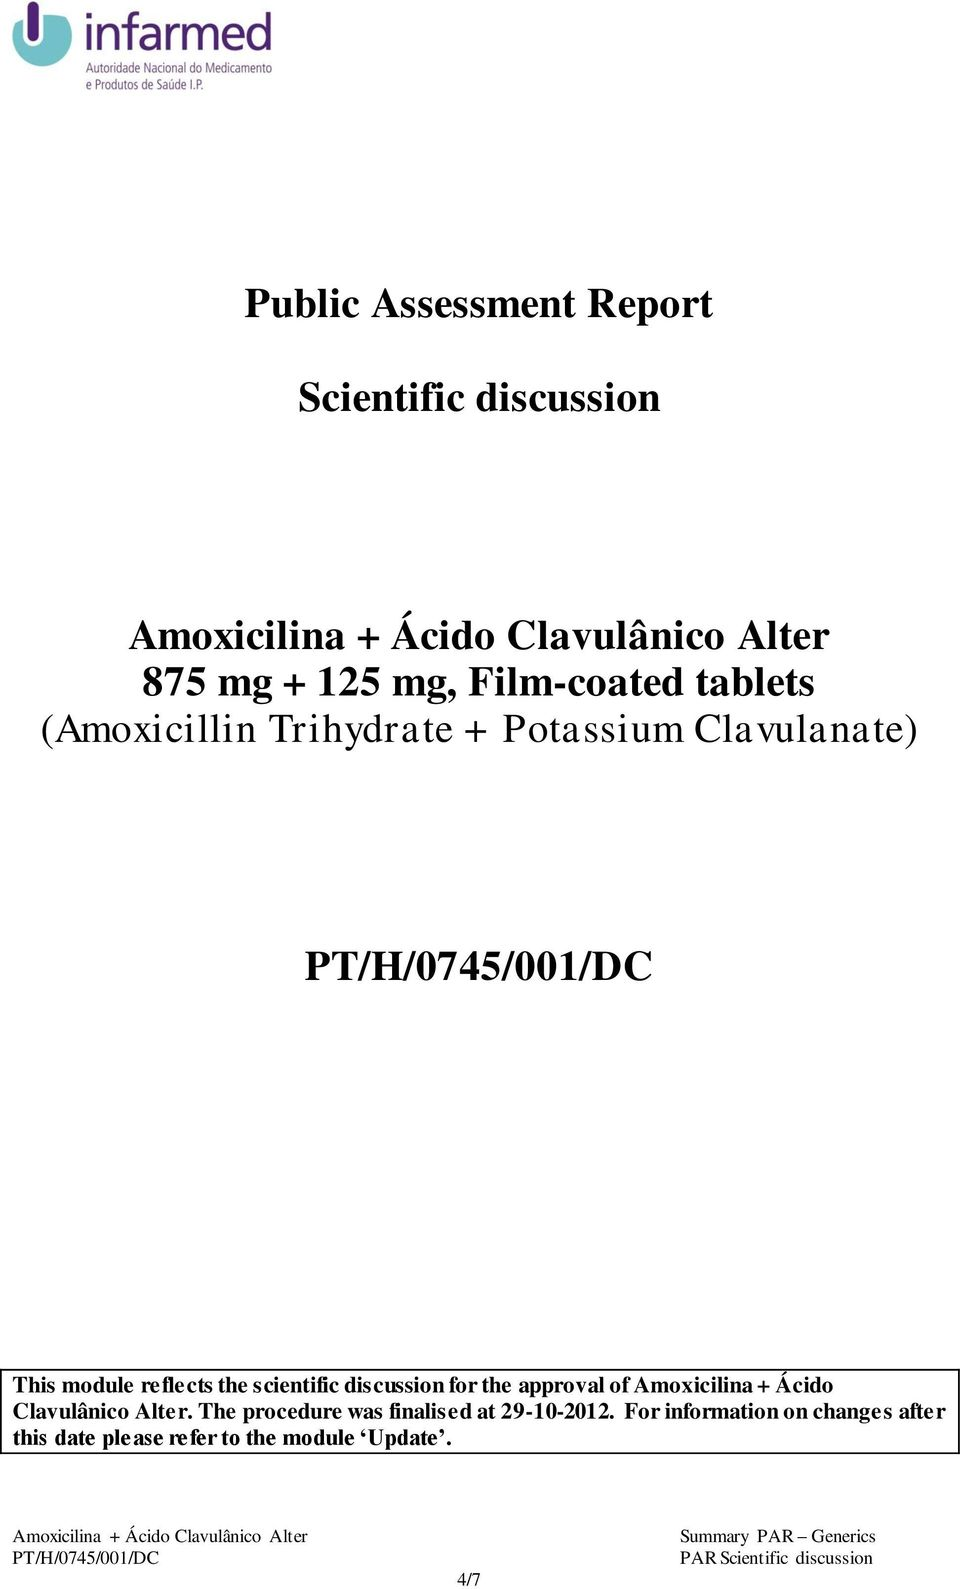 discussion for the approval of Amoxicilina + Ácido Clavulânico Alter.